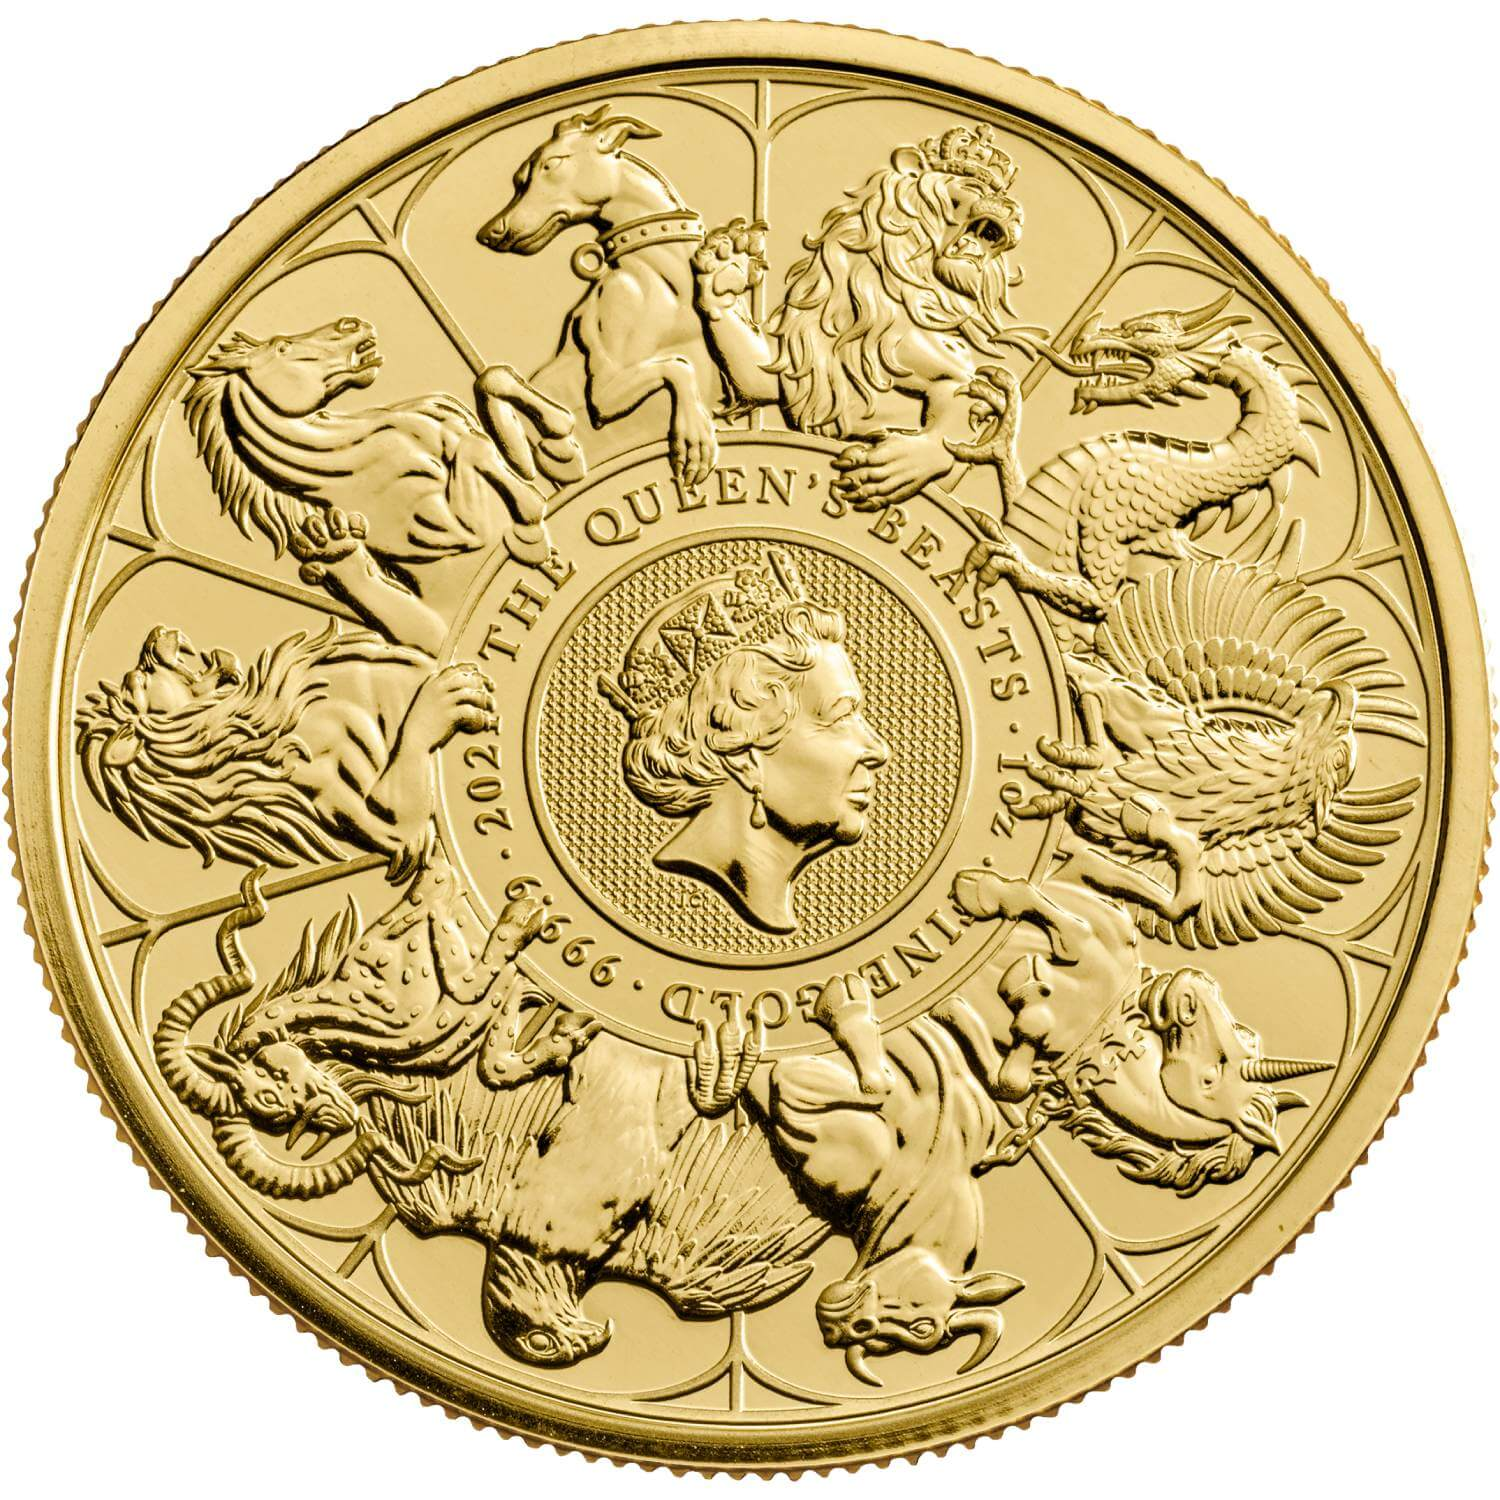 2021 1oz Queen's Beasts Gold Completer Coin